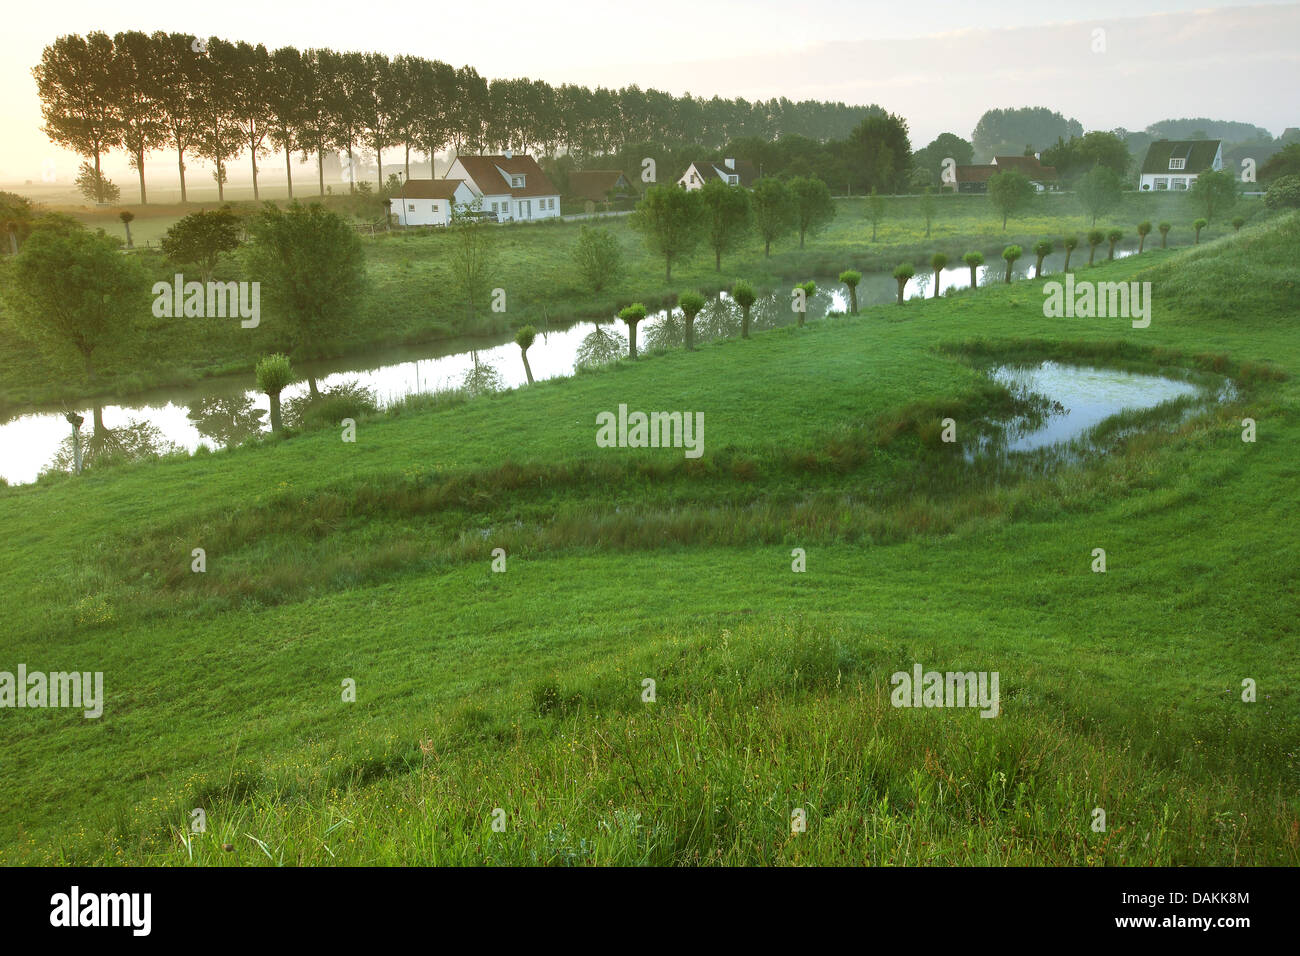 inland waterway and rural settlement, Netherlands, Retranchement, Sluis - Stock Image